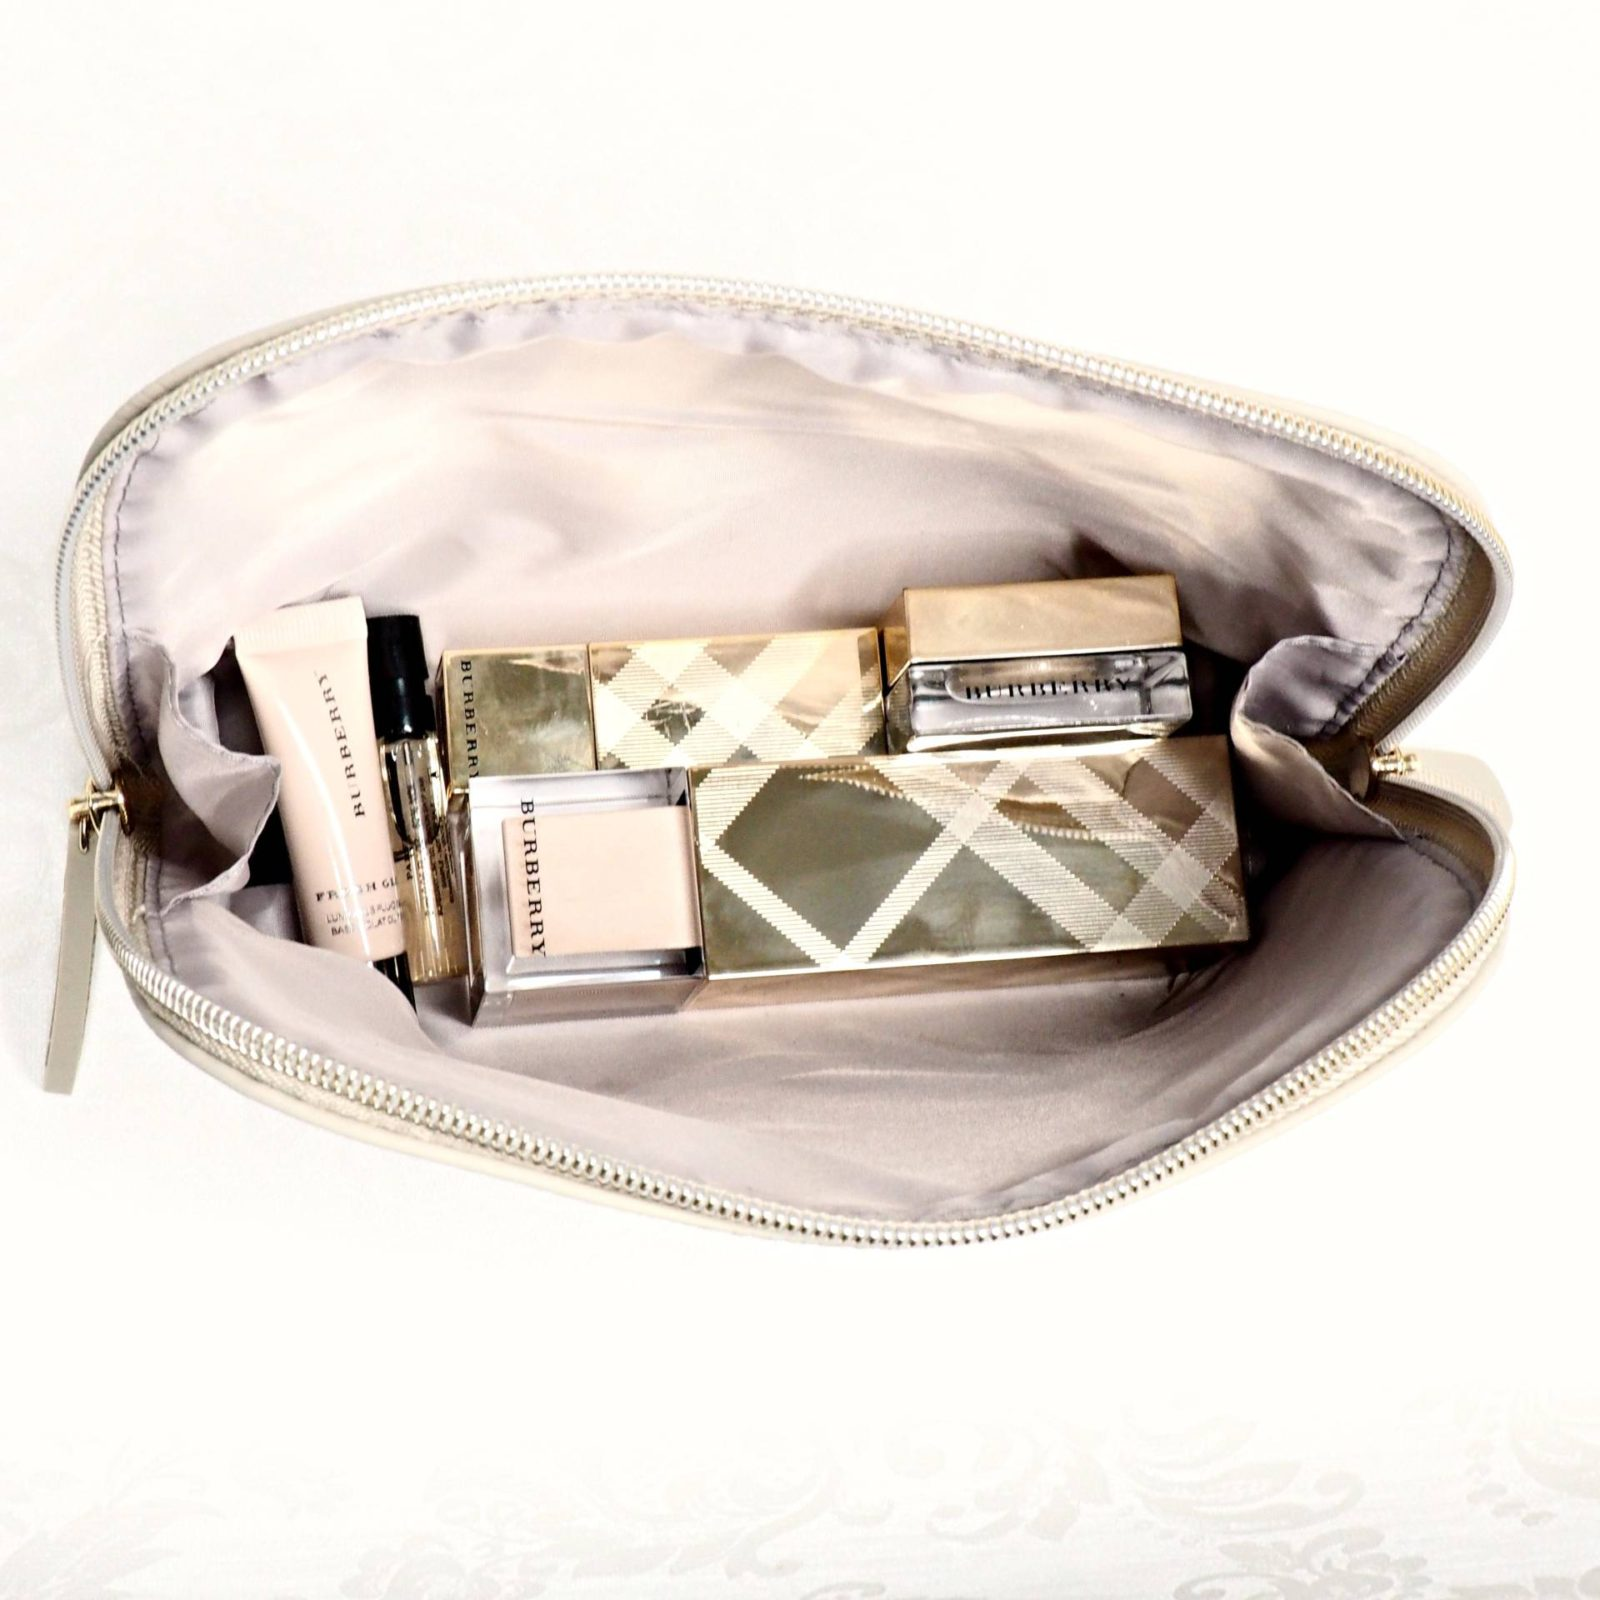 Burberry Festive Glow Set House of Paper Doll